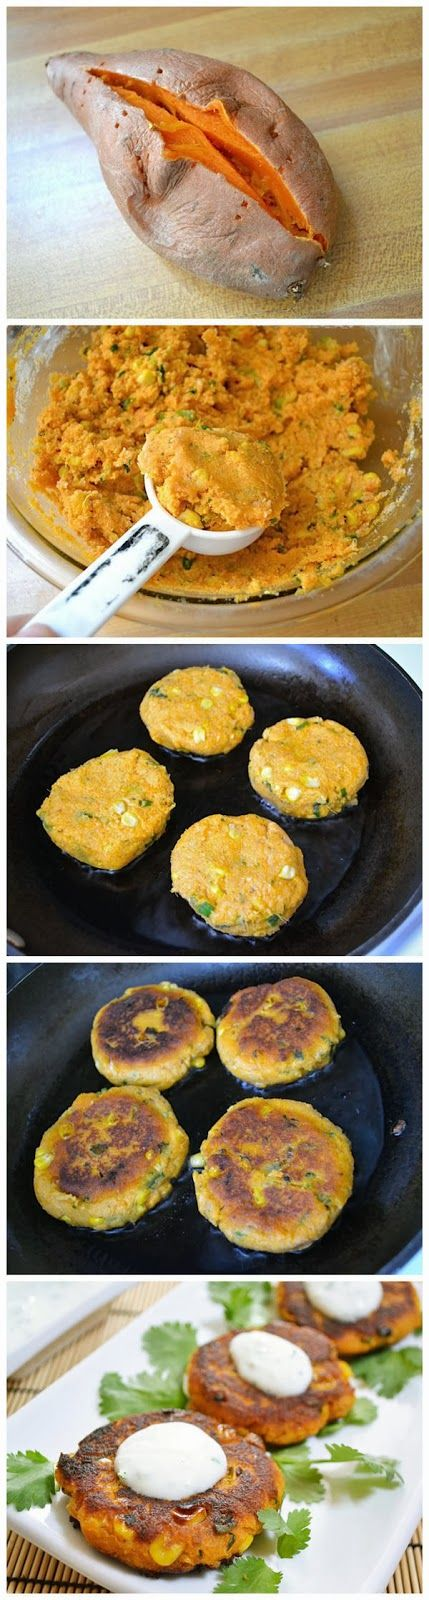 Sweet potato cakes with garlic dipping sauce. Love me some sweet potato!!